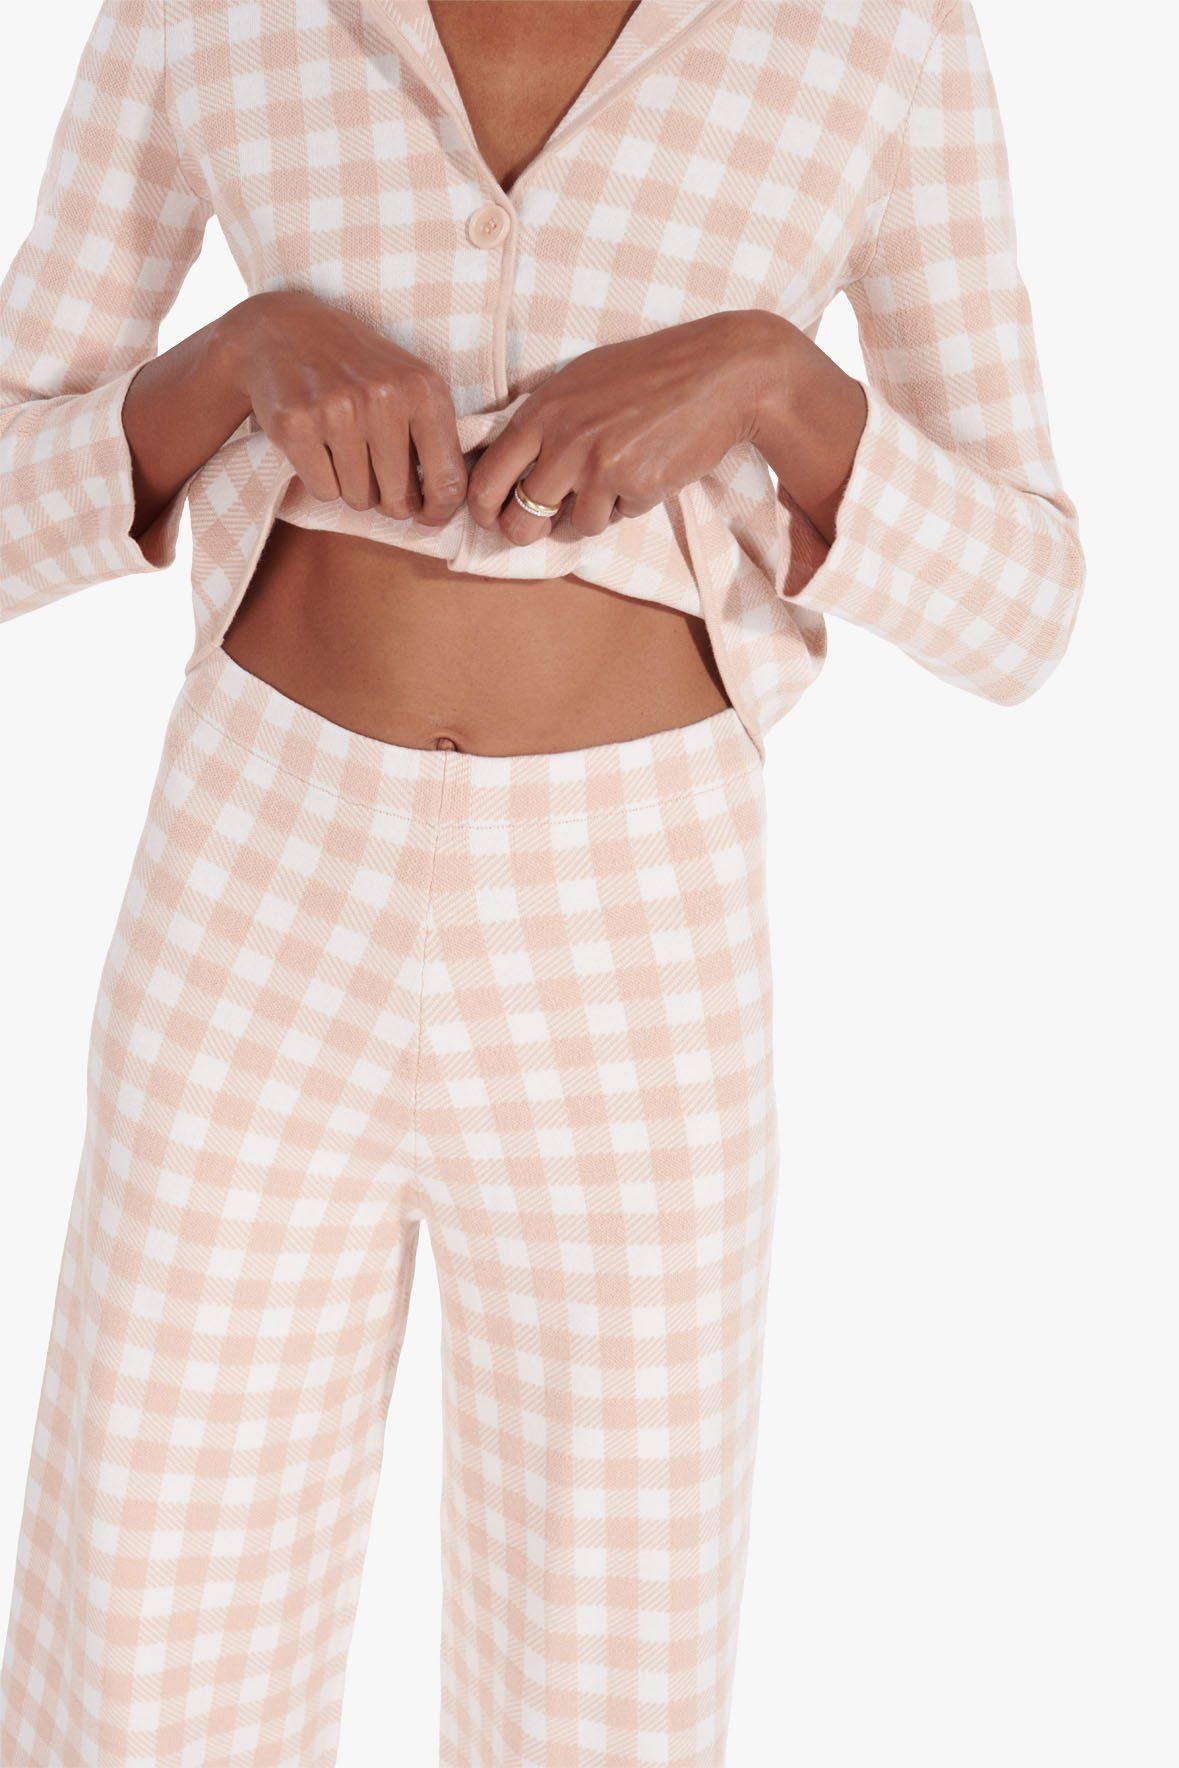 AVALANCHE PANT | NUDE 3